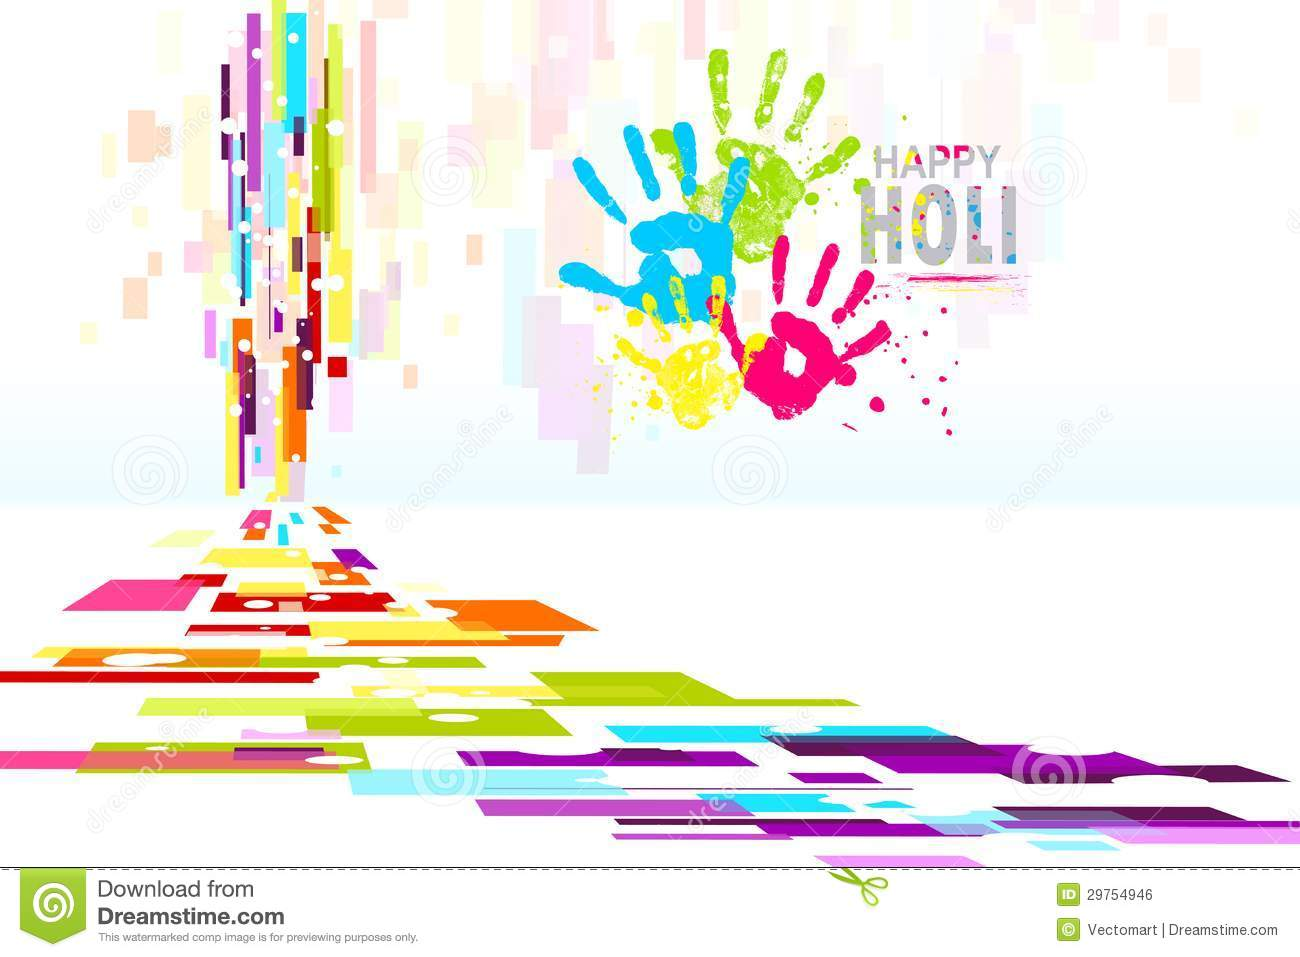 3d Abstract Rainbow Wallpaper Holi Wallpaper Royalty Free Stock Image Image 29754946